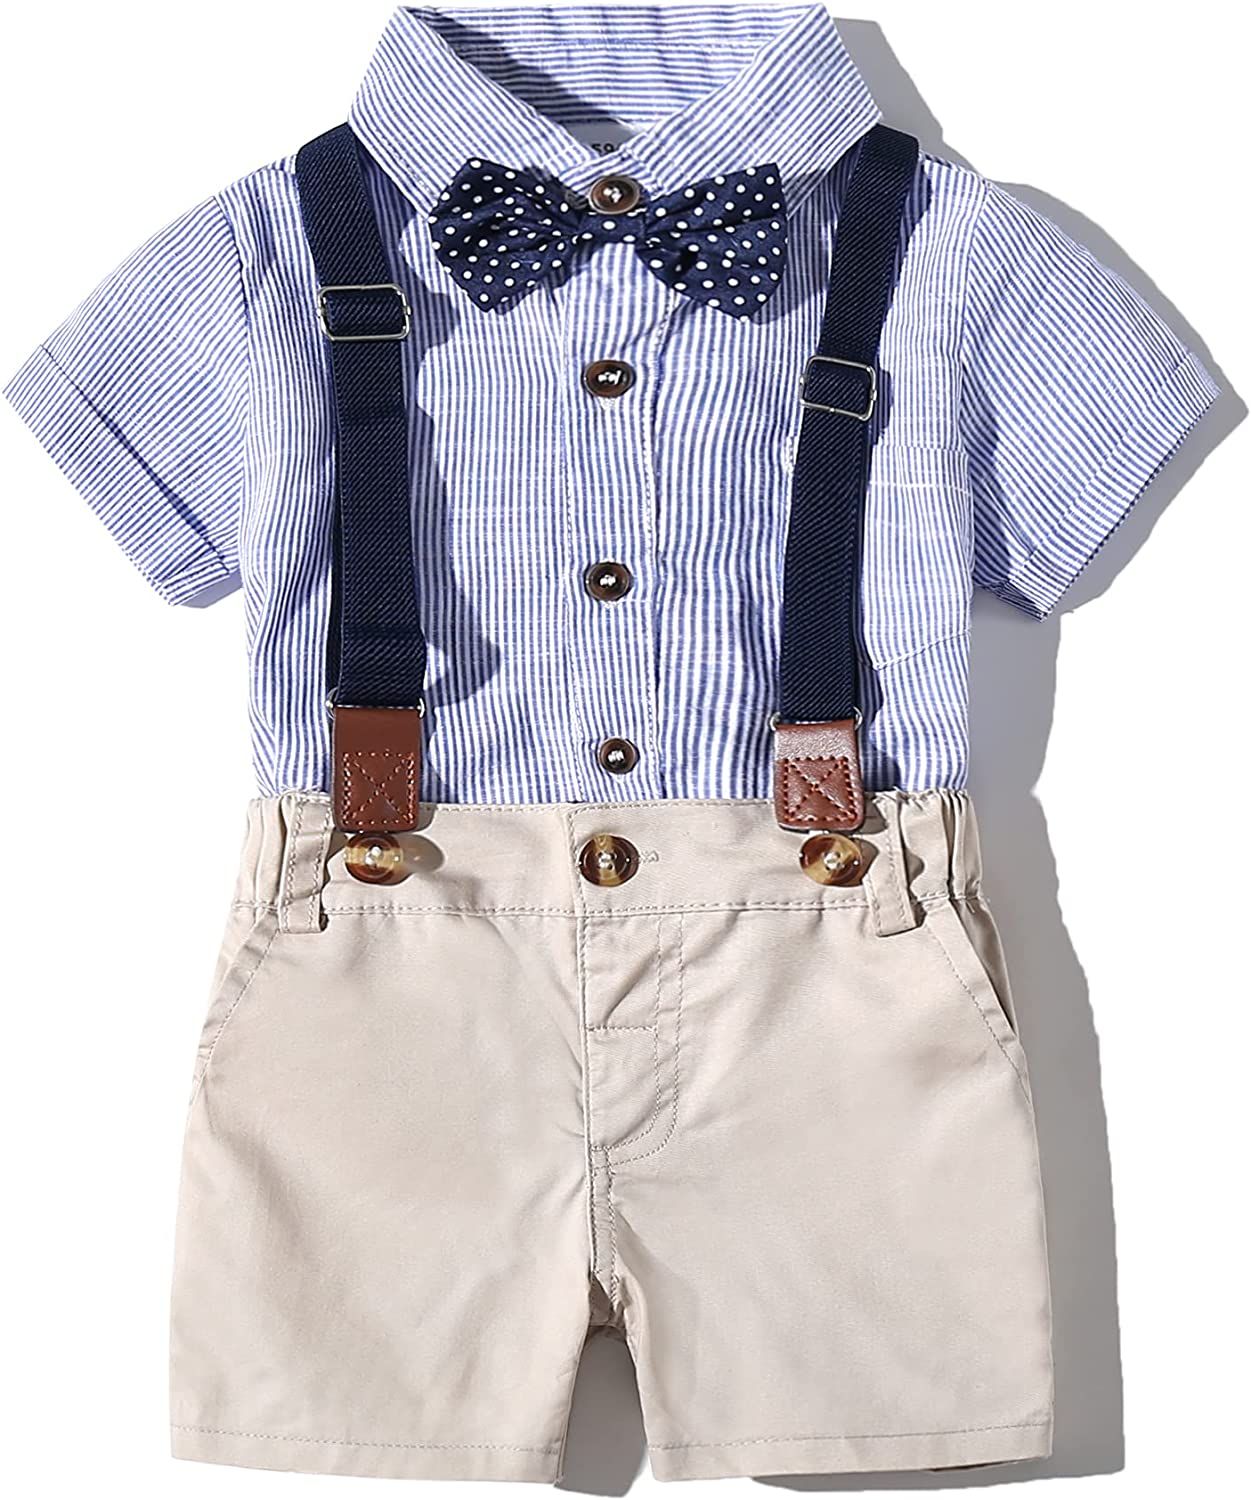 Baby Super intense SALE Boys Gentleman Suits Shipping included Outfits